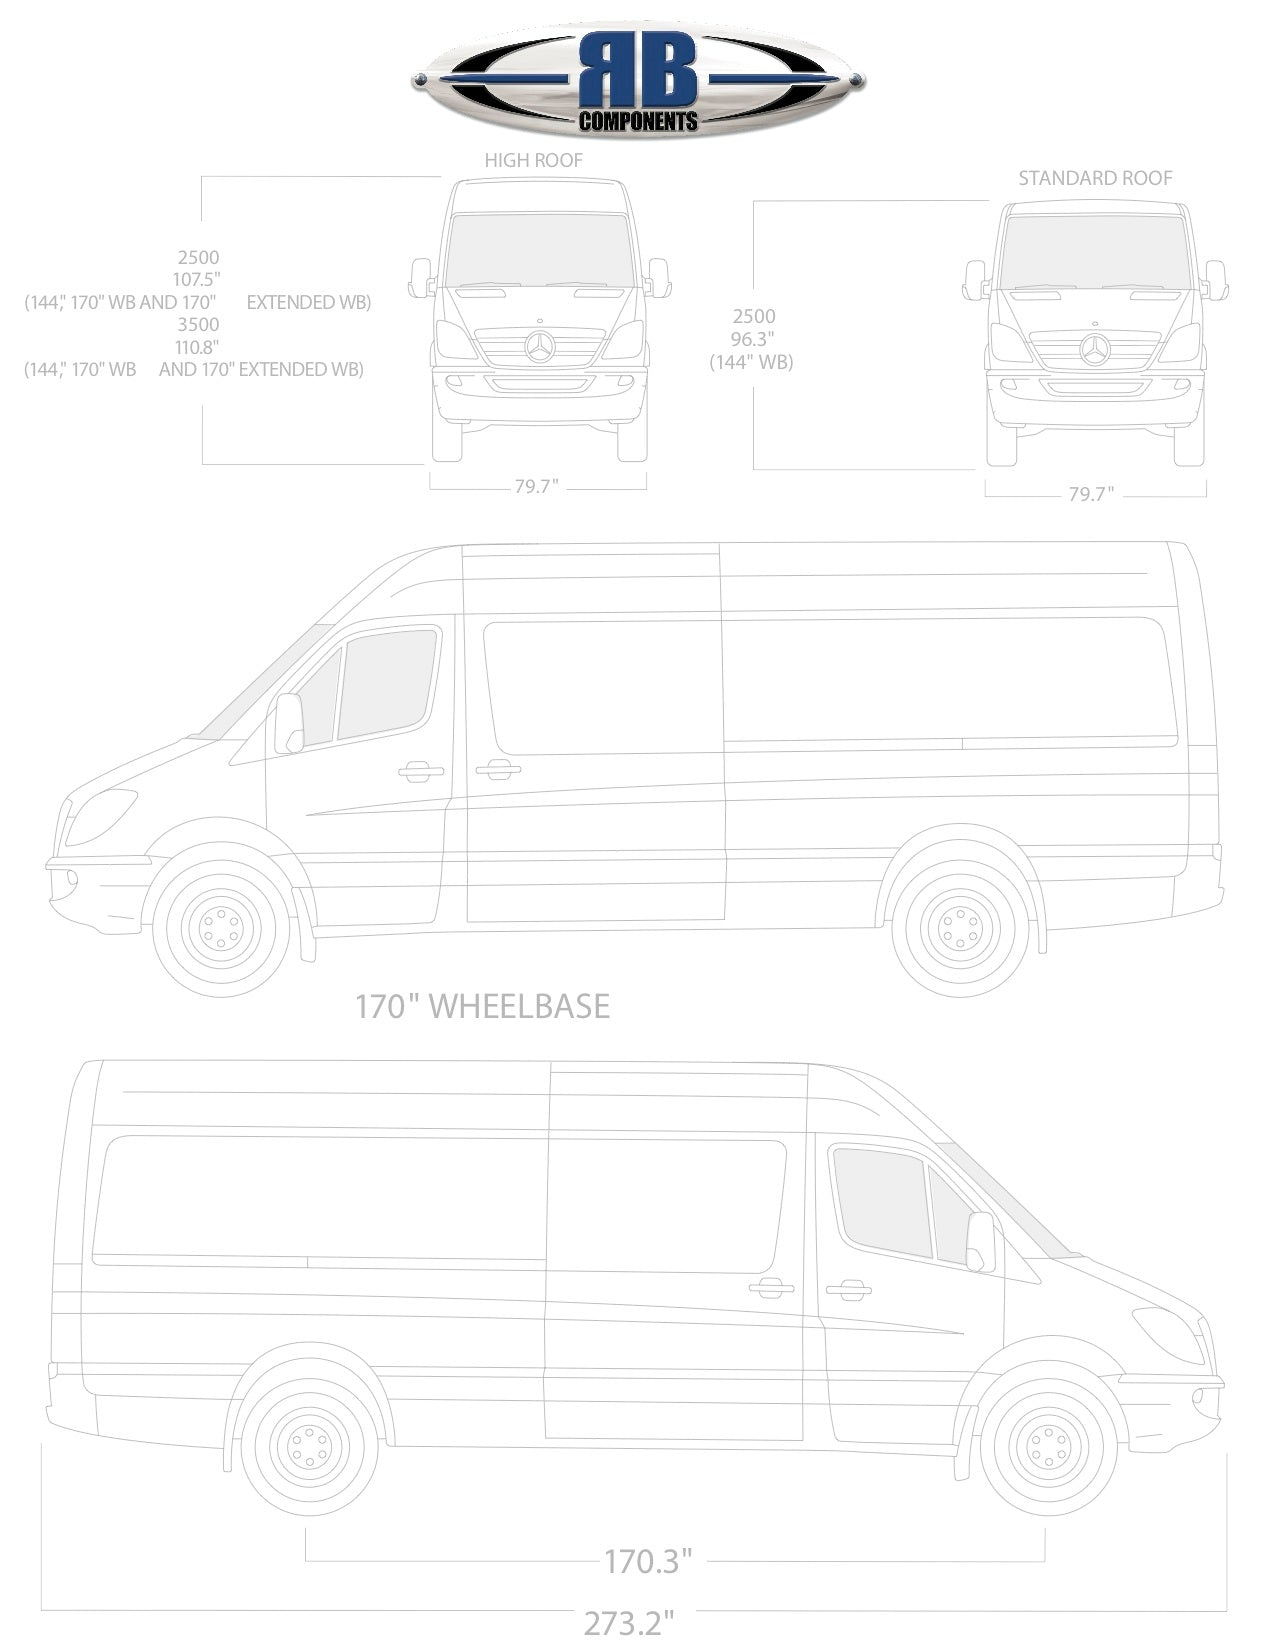 Sprinter Floorplan Templates 144 170 170 Ext Rb